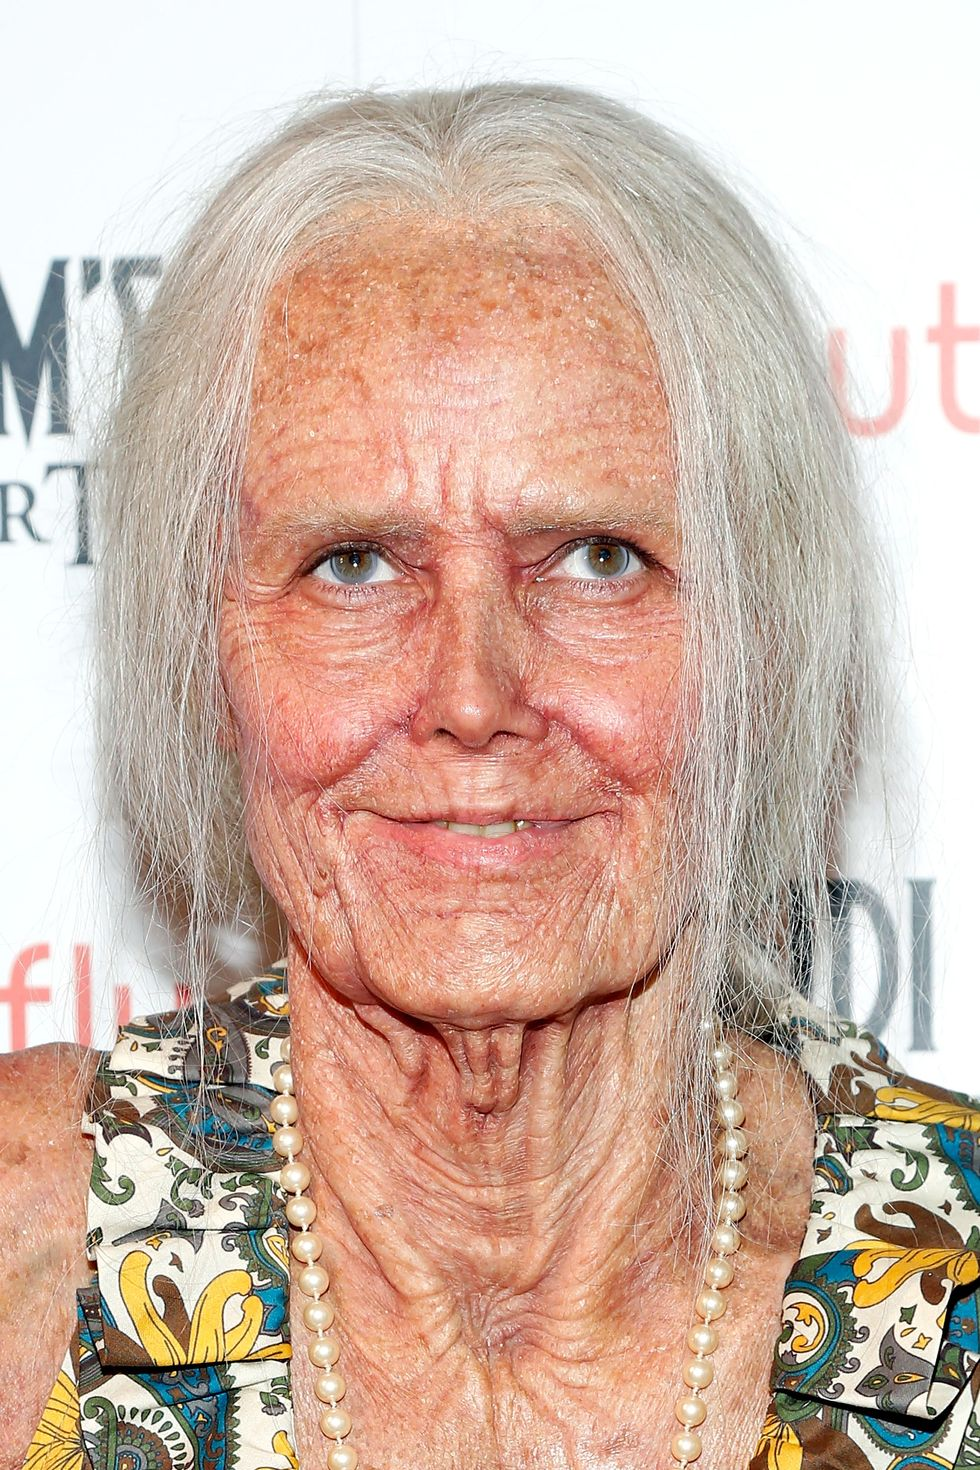 Heidi Klum as an old lady with white hair and prosthetic makeup.